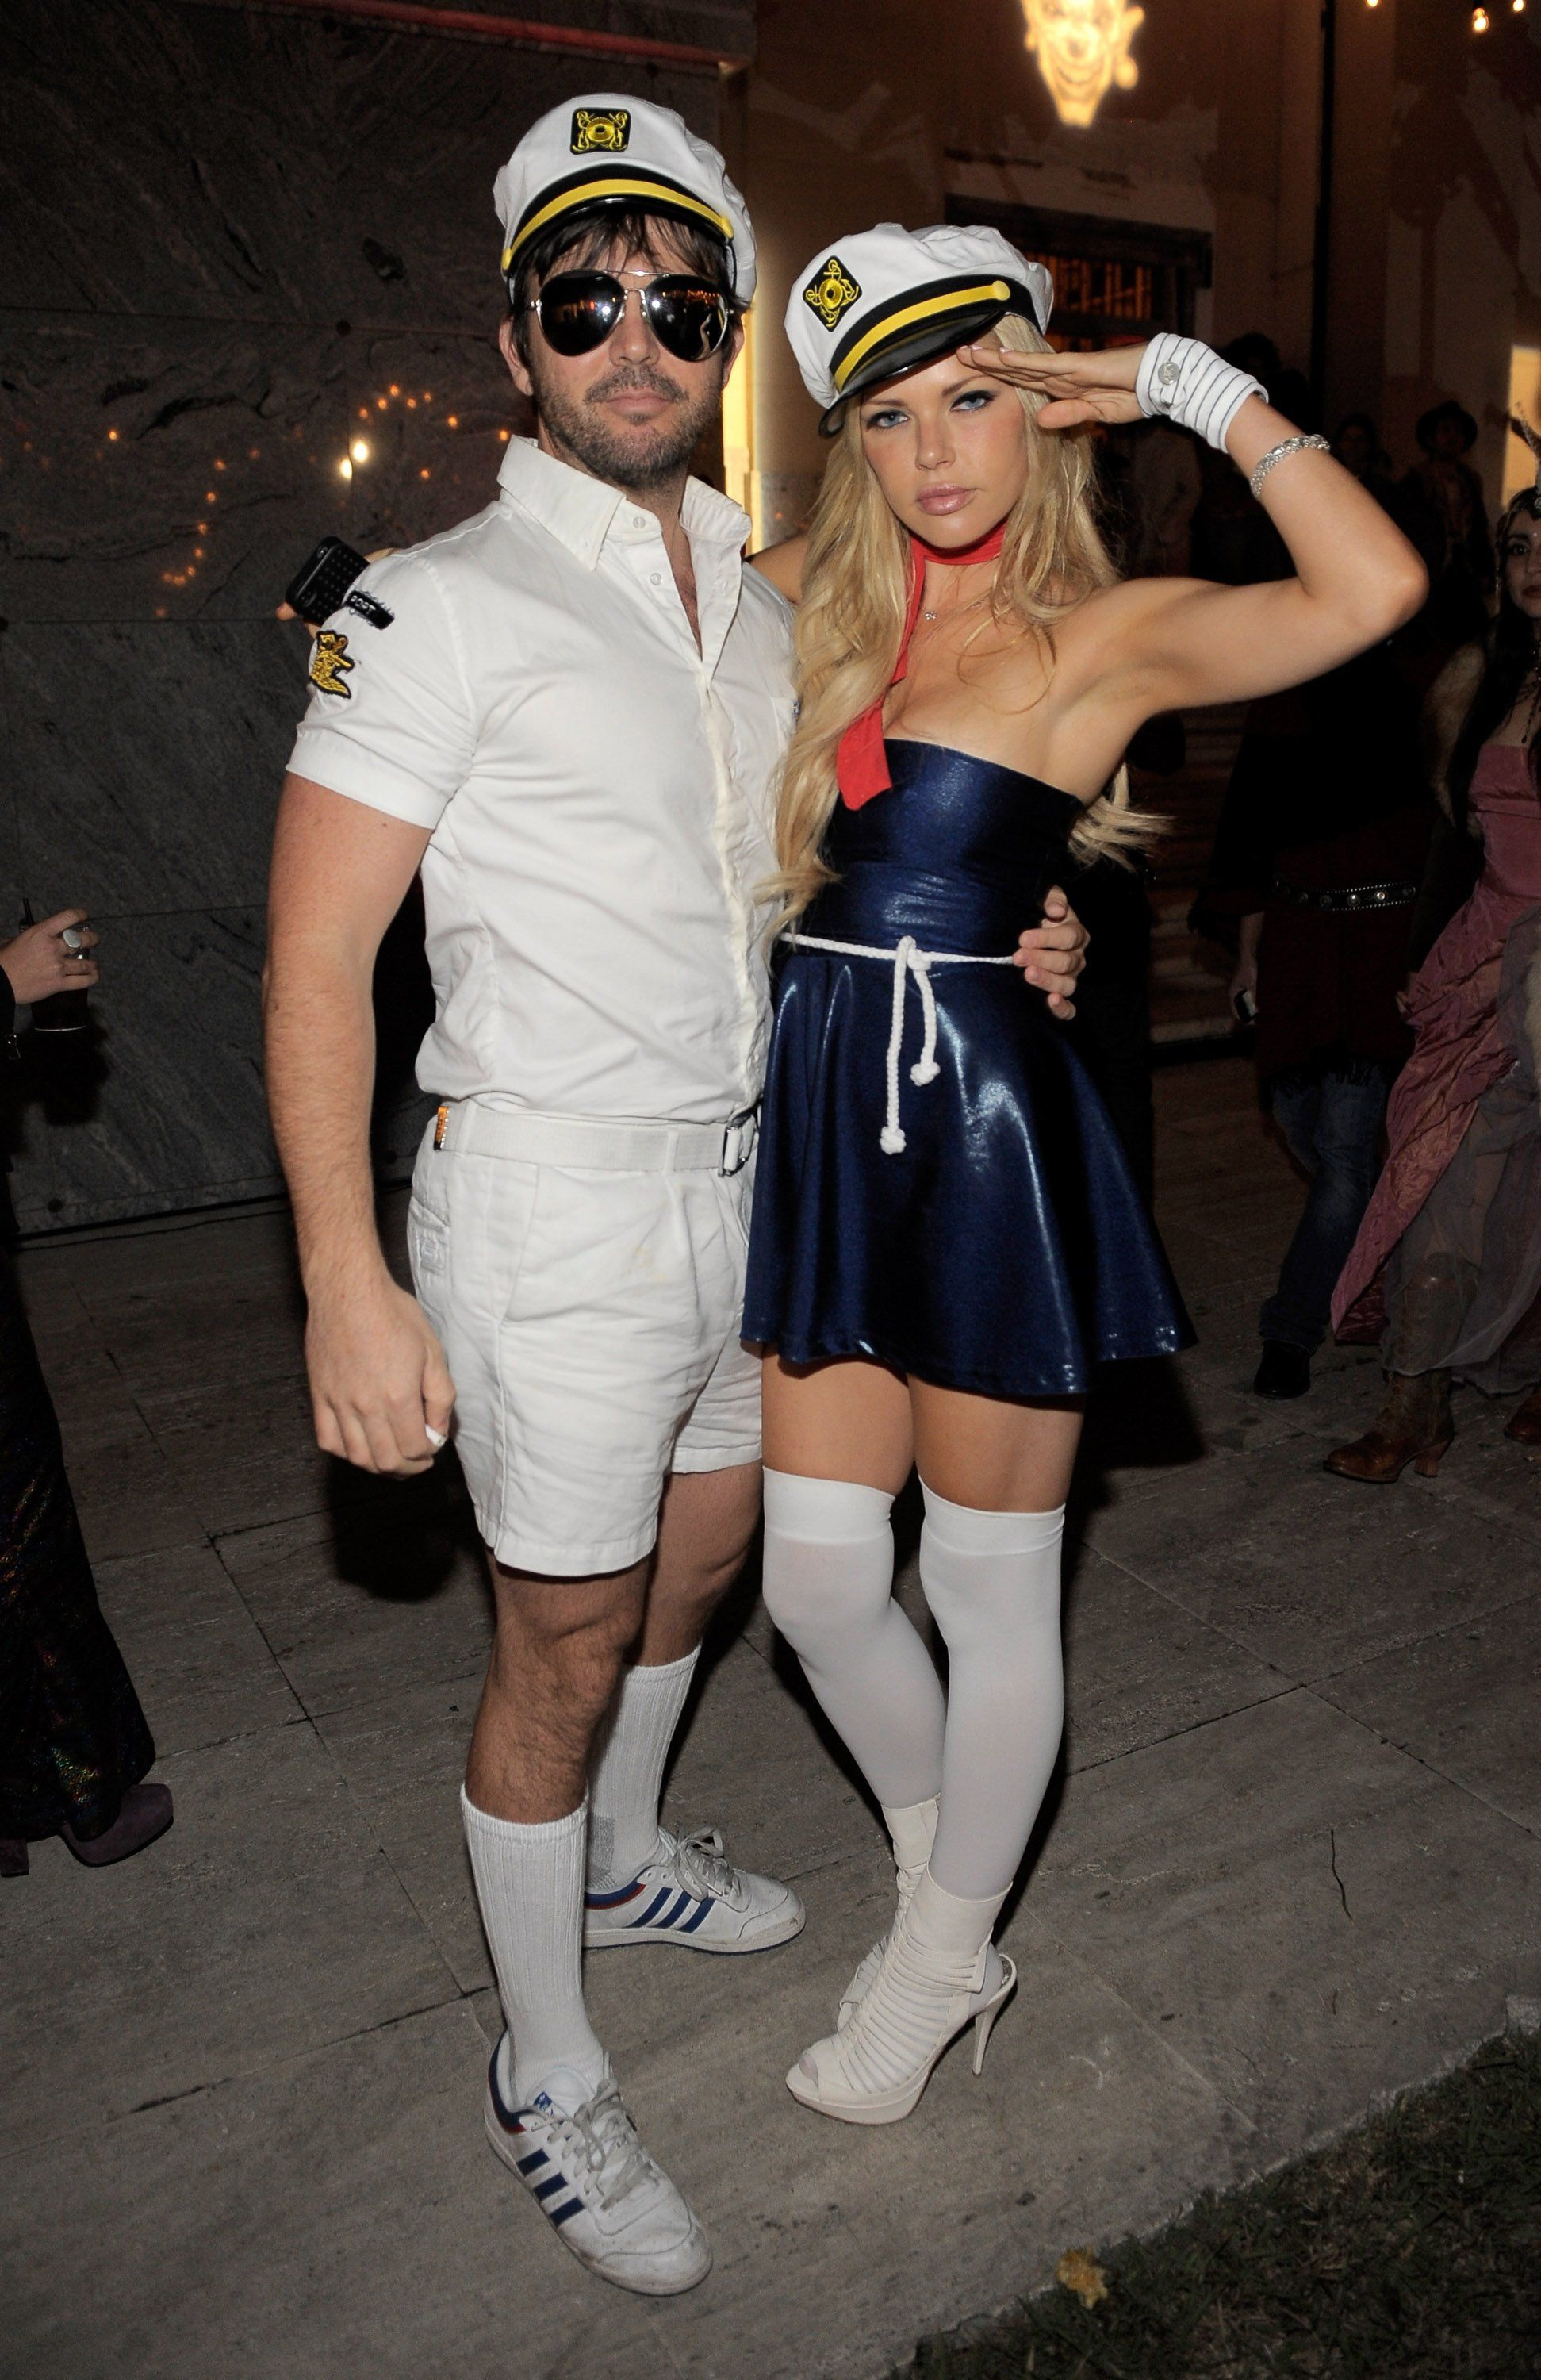 pin for later 90 cute crazy and creepy celebrity halloween costumes jason gann and sophie monk looked ready to take on the high seas in their sailor - Sailors Halloween Costumes